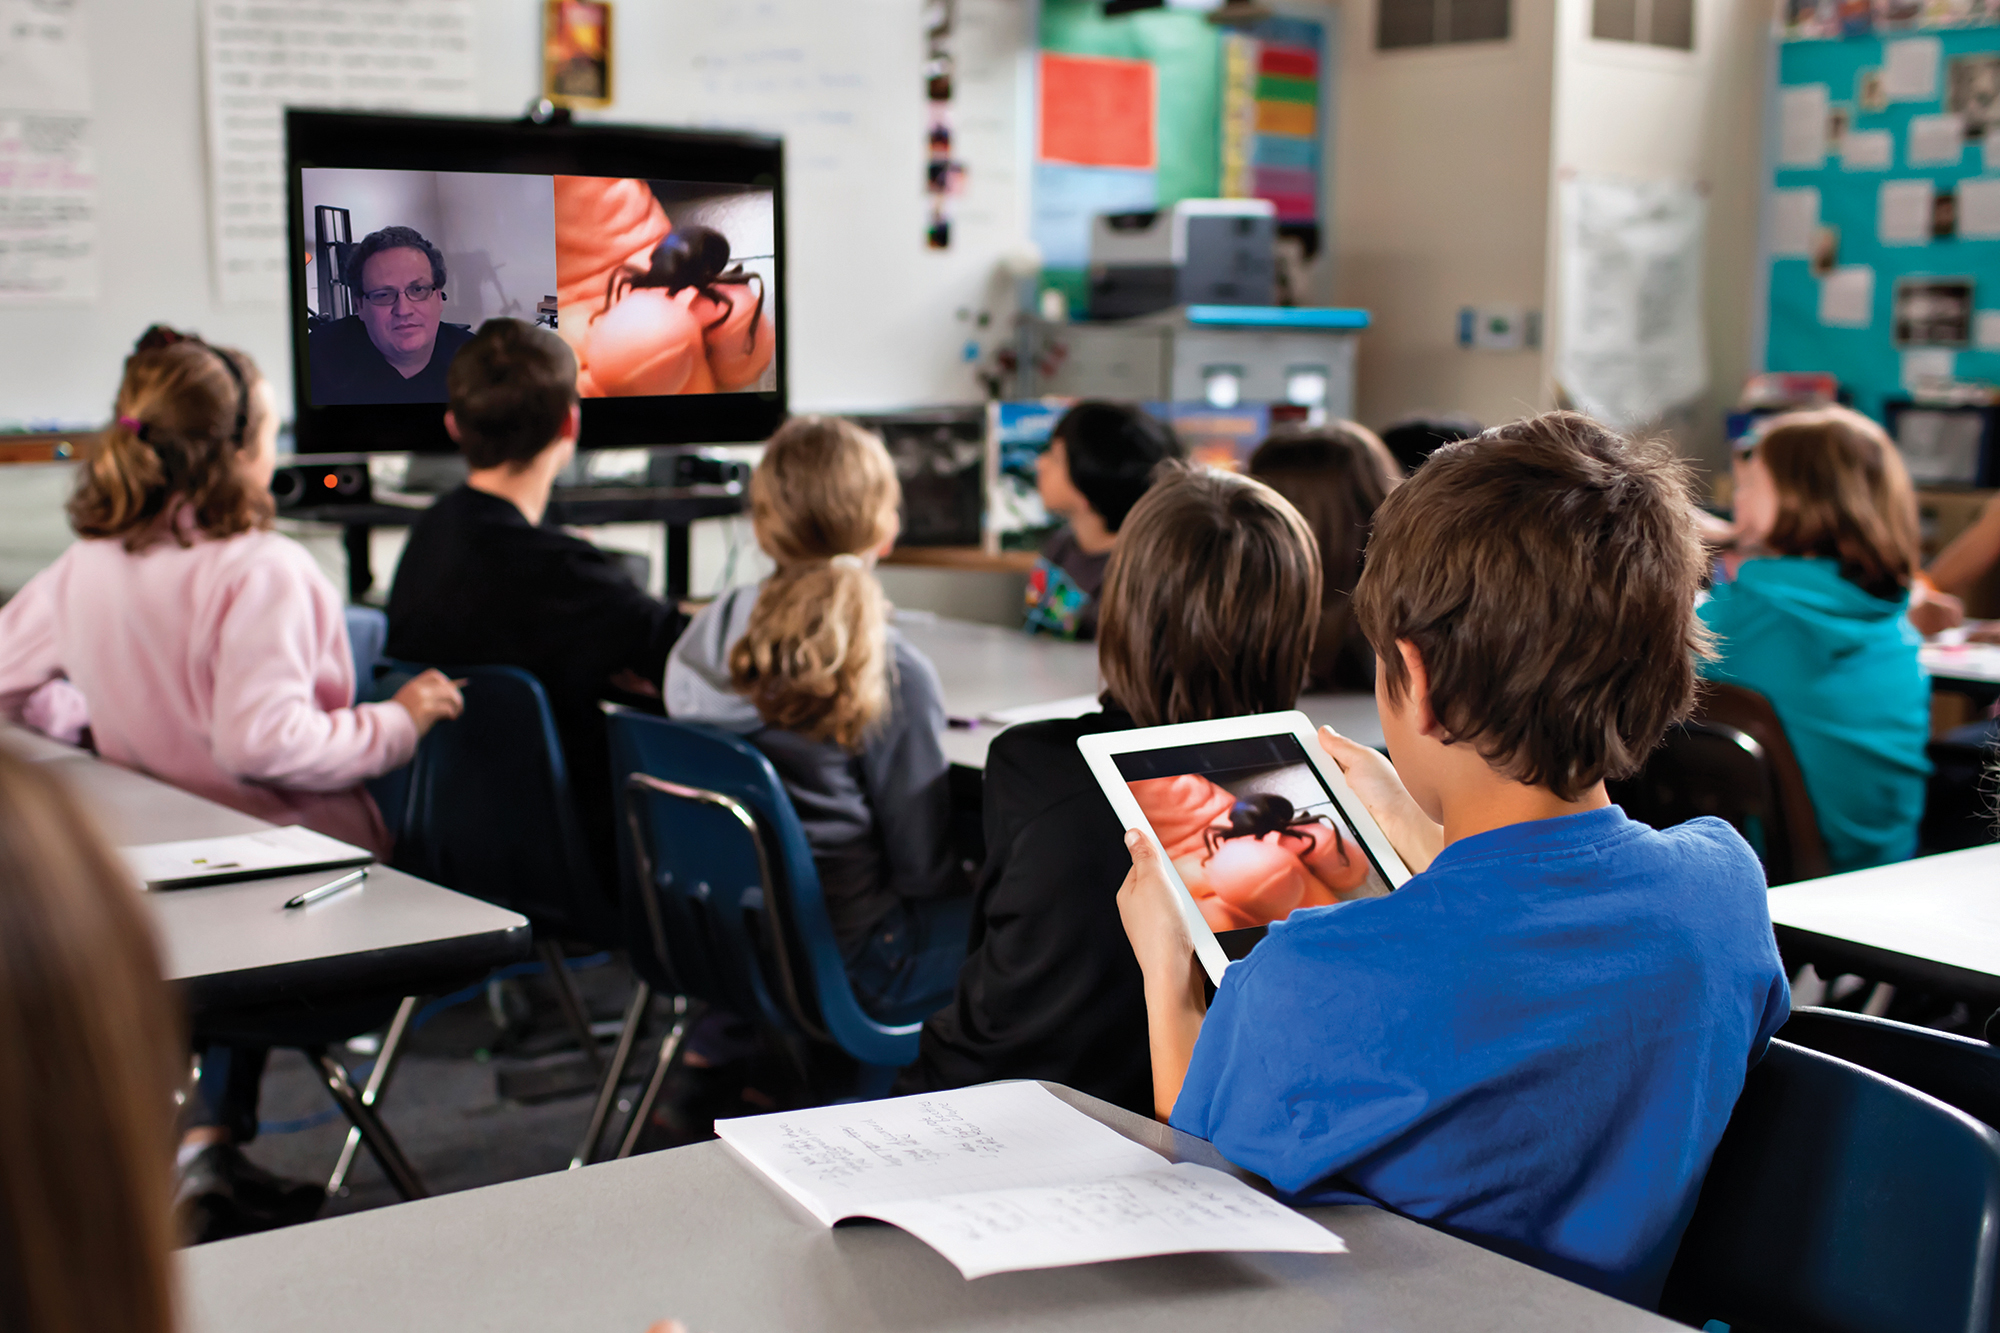 Technology of Teleconferencing Connects Urban and Rural Schools